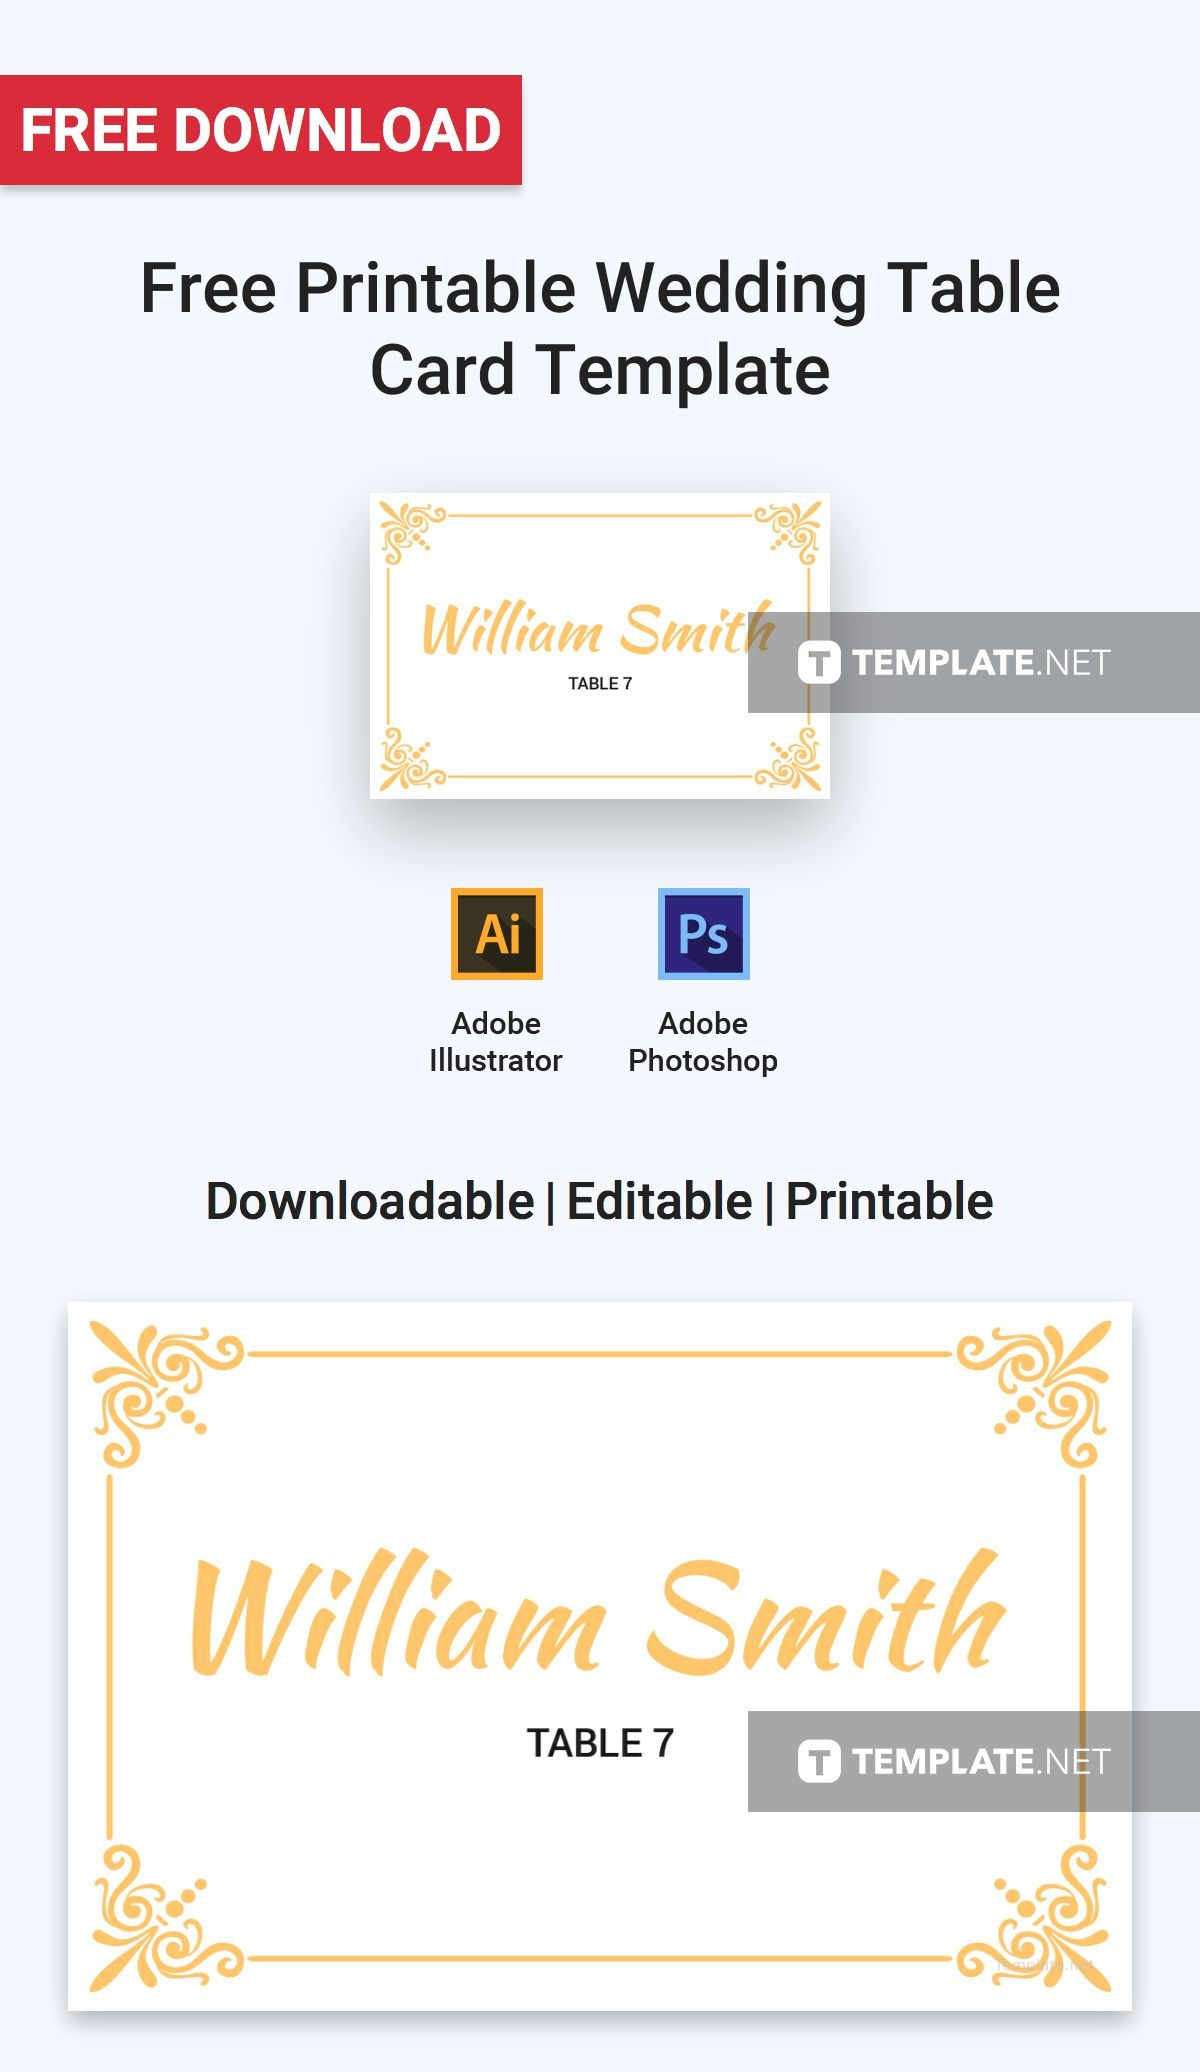 Free Printable Wedding Table Card   Printables, Invitations - Free Printable Place Cards Template